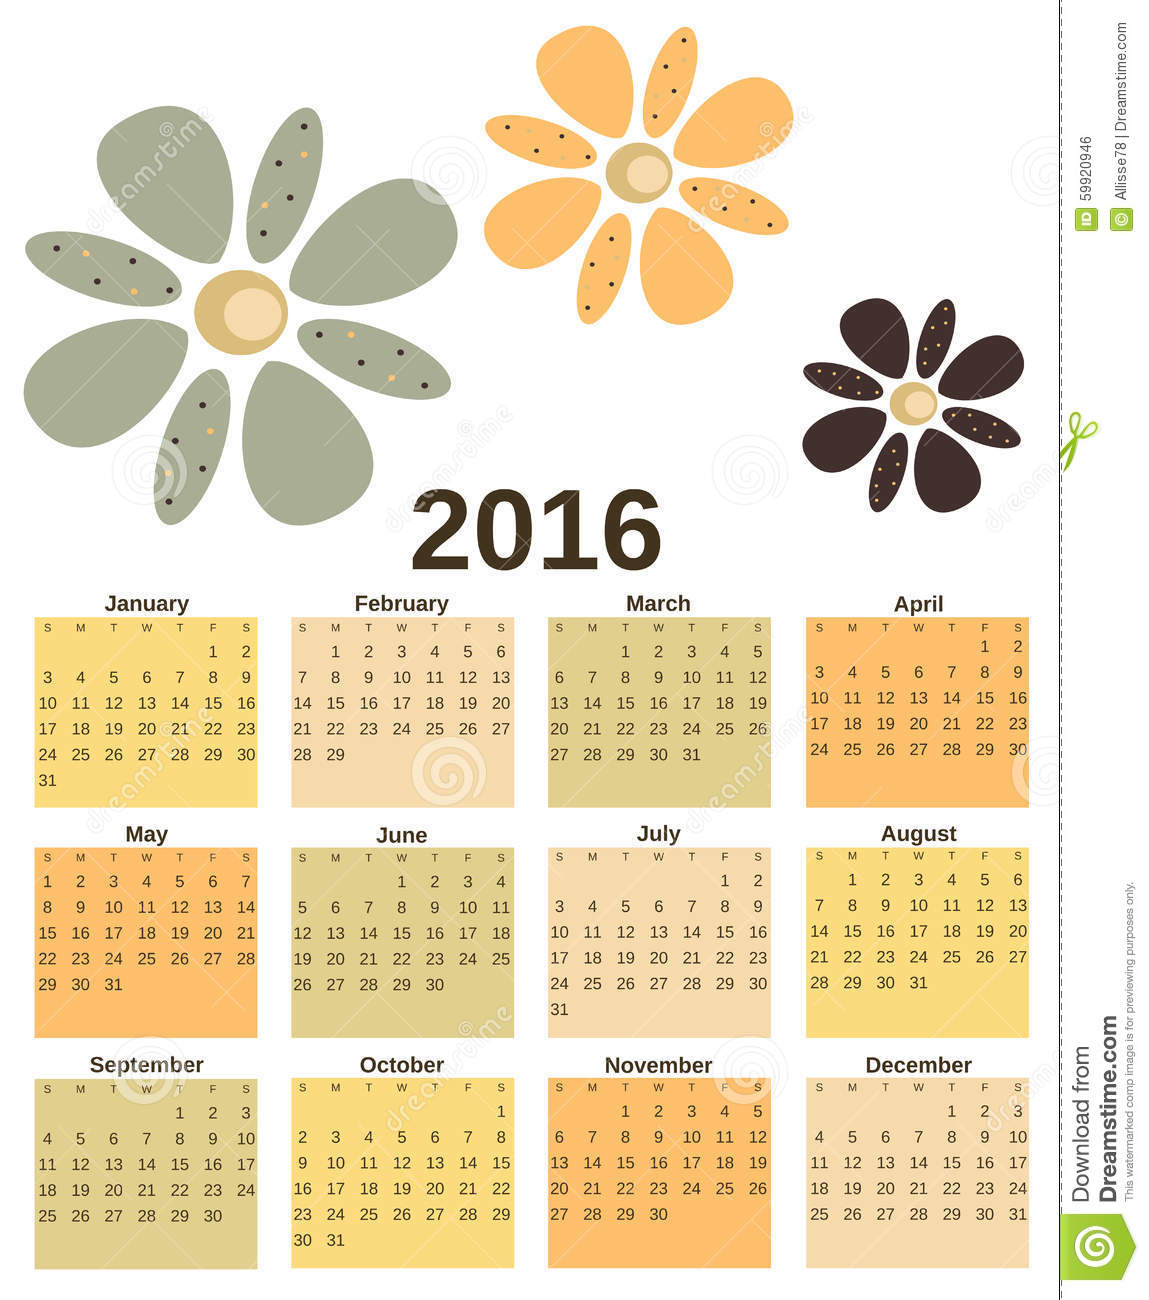 Calendar Vintage Vector : Vintage retro calendar with flowers background